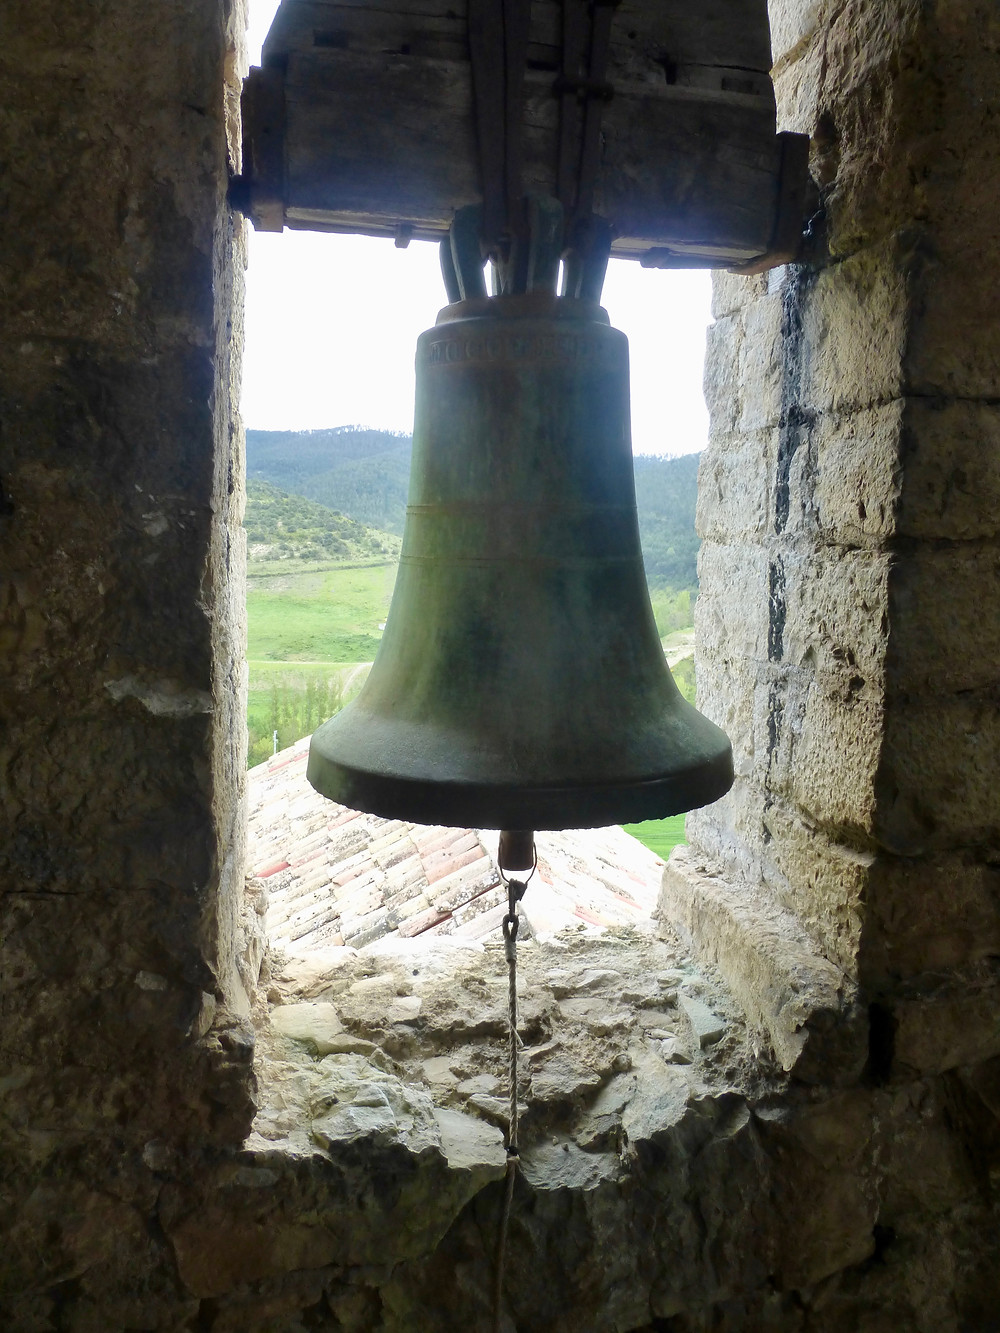 Church bell tower on Camino de Santiago